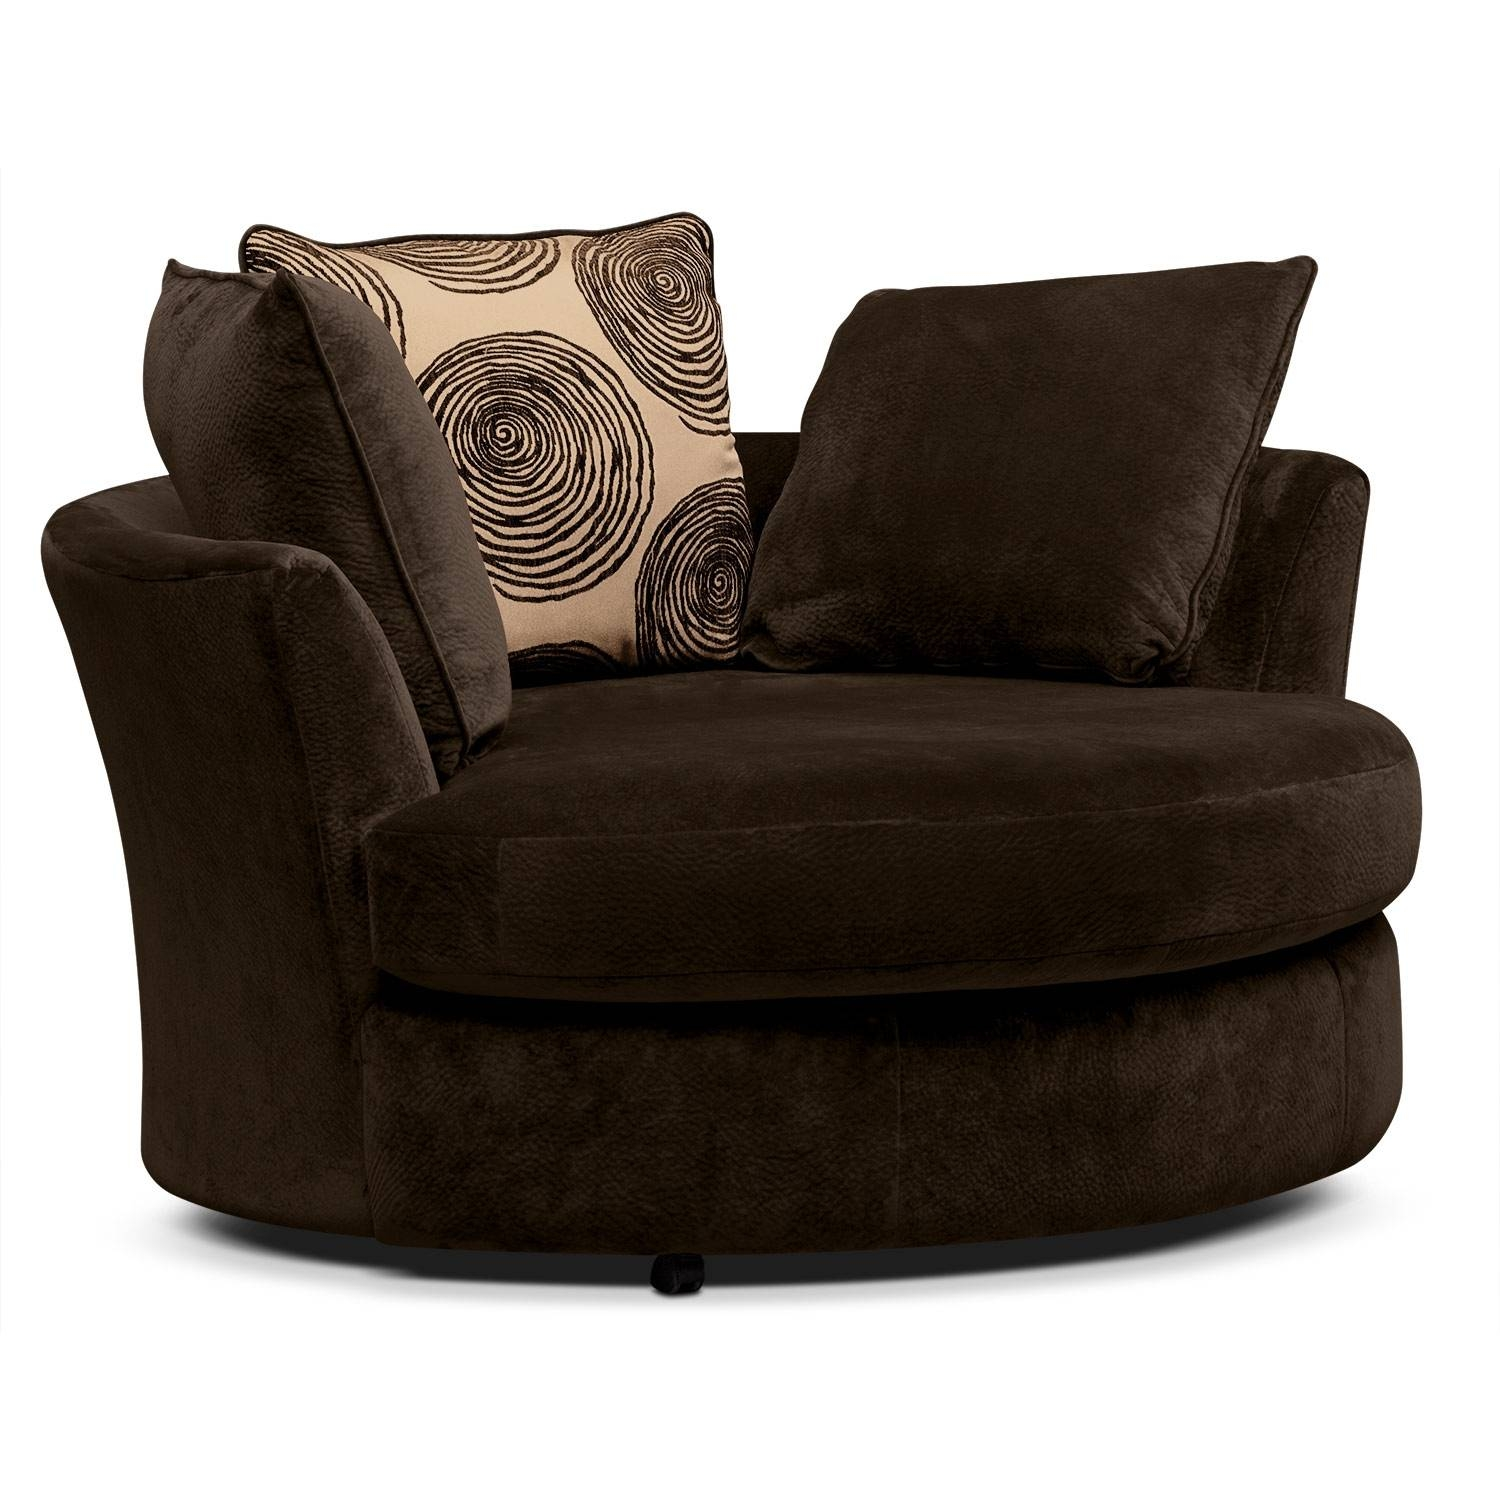 Round Sofa Chair Ikea | Tehranmix Decoration with regard to Round Sofa Chair (Image 17 of 30)